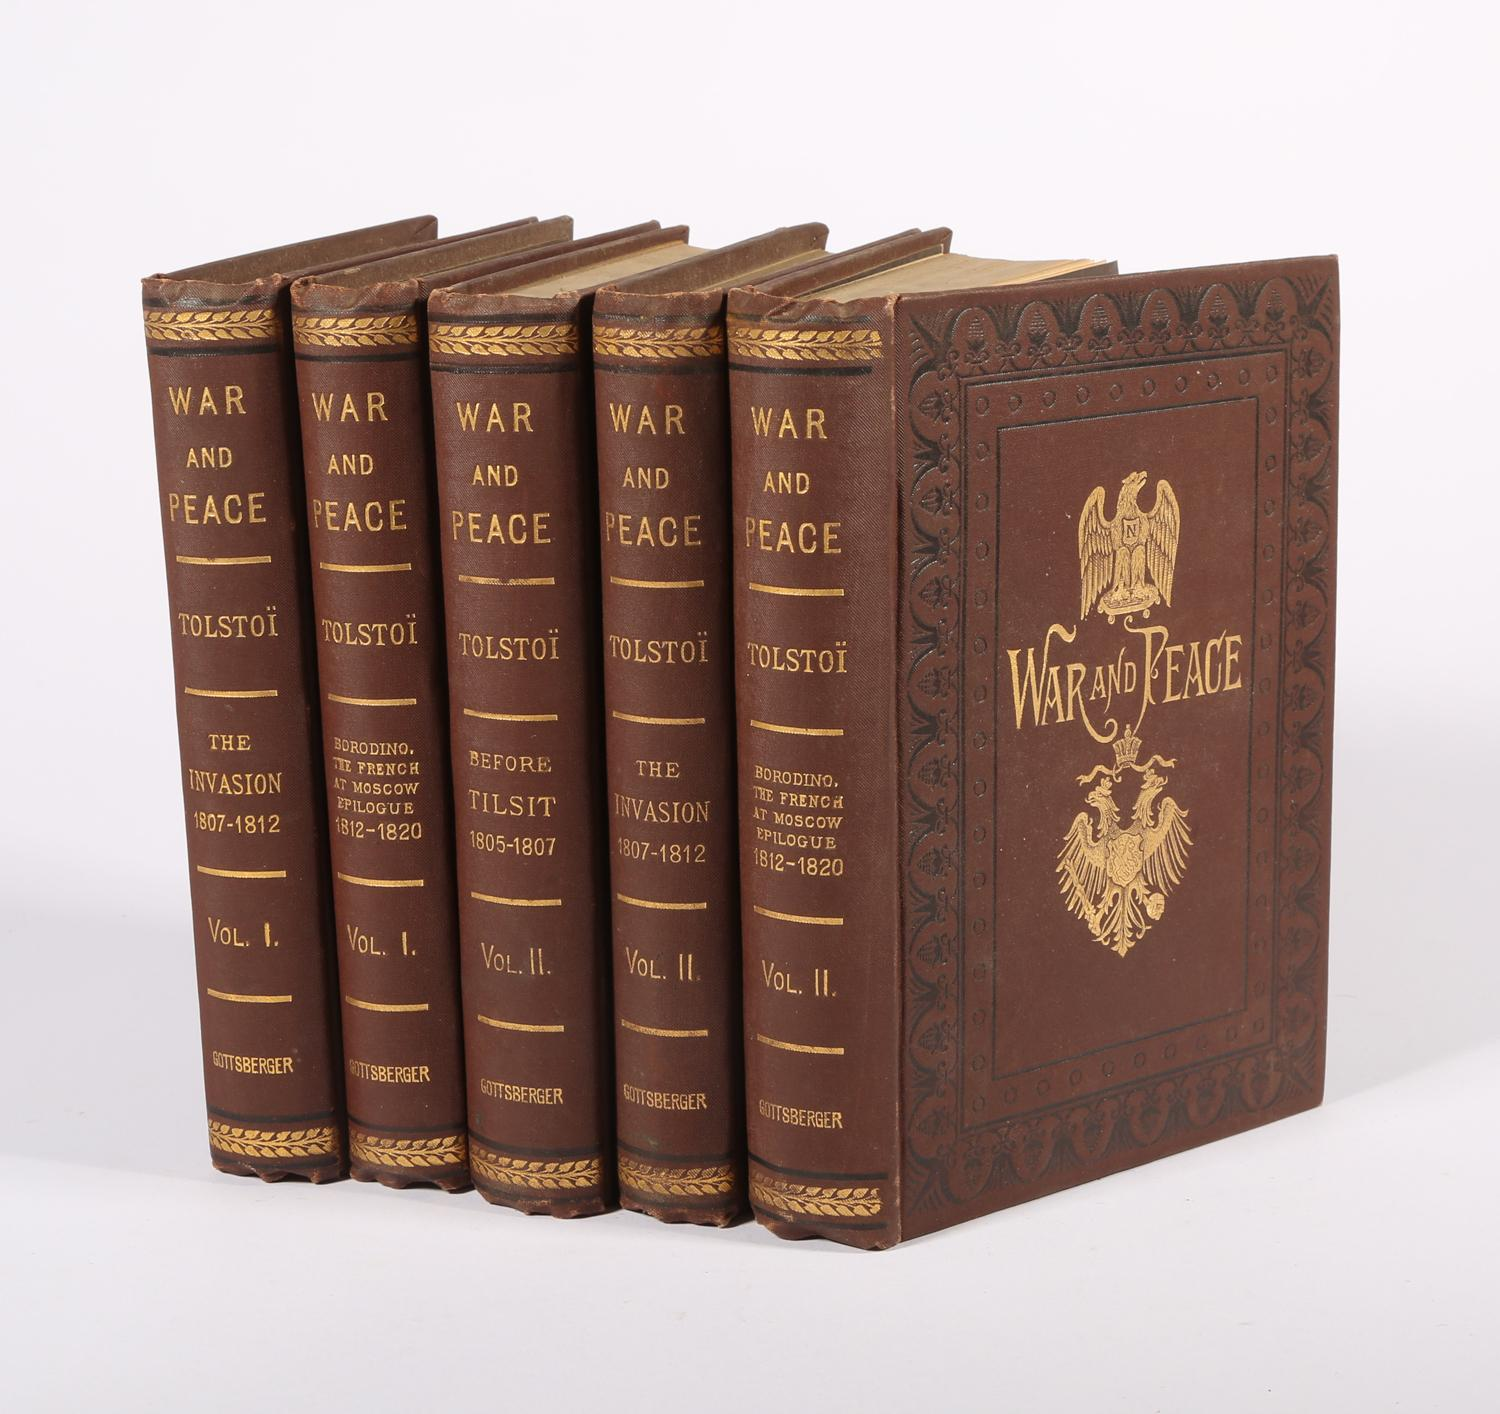 Tolstoy, Leo. War and Peace, 5 of 6 Volumes, 1886 SBC2